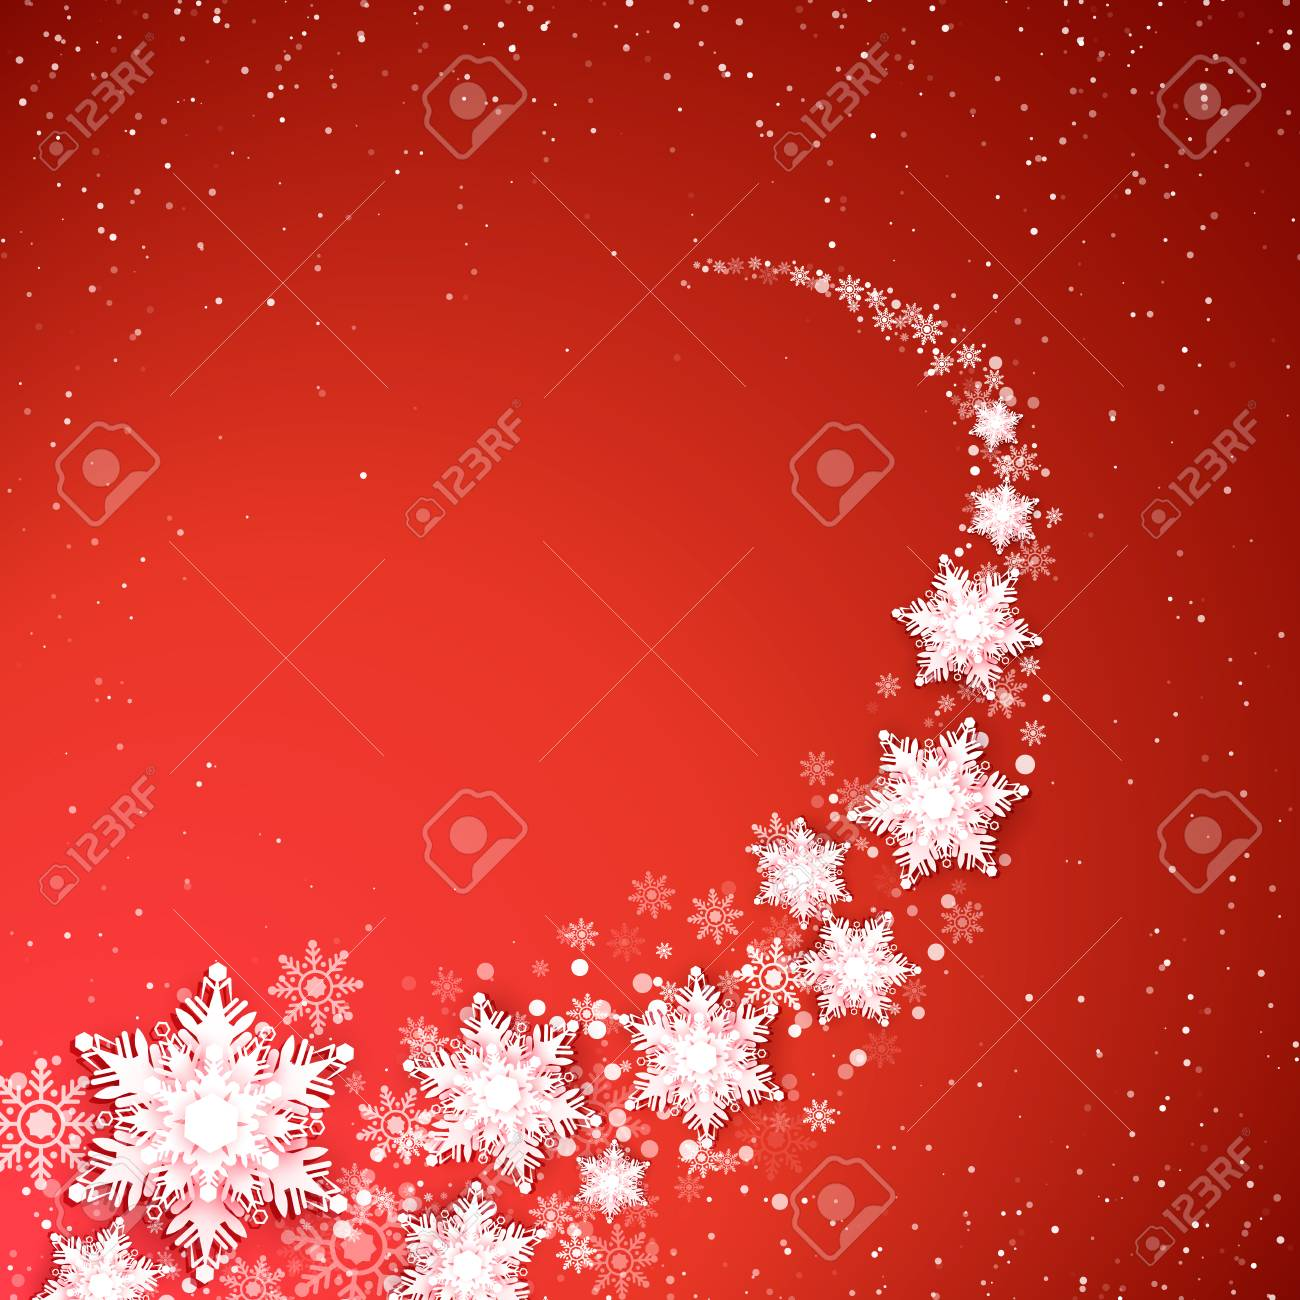 Holiday blizzard. Christmas and New Year background. Snowflakes trail. Vector illustration - 127129815